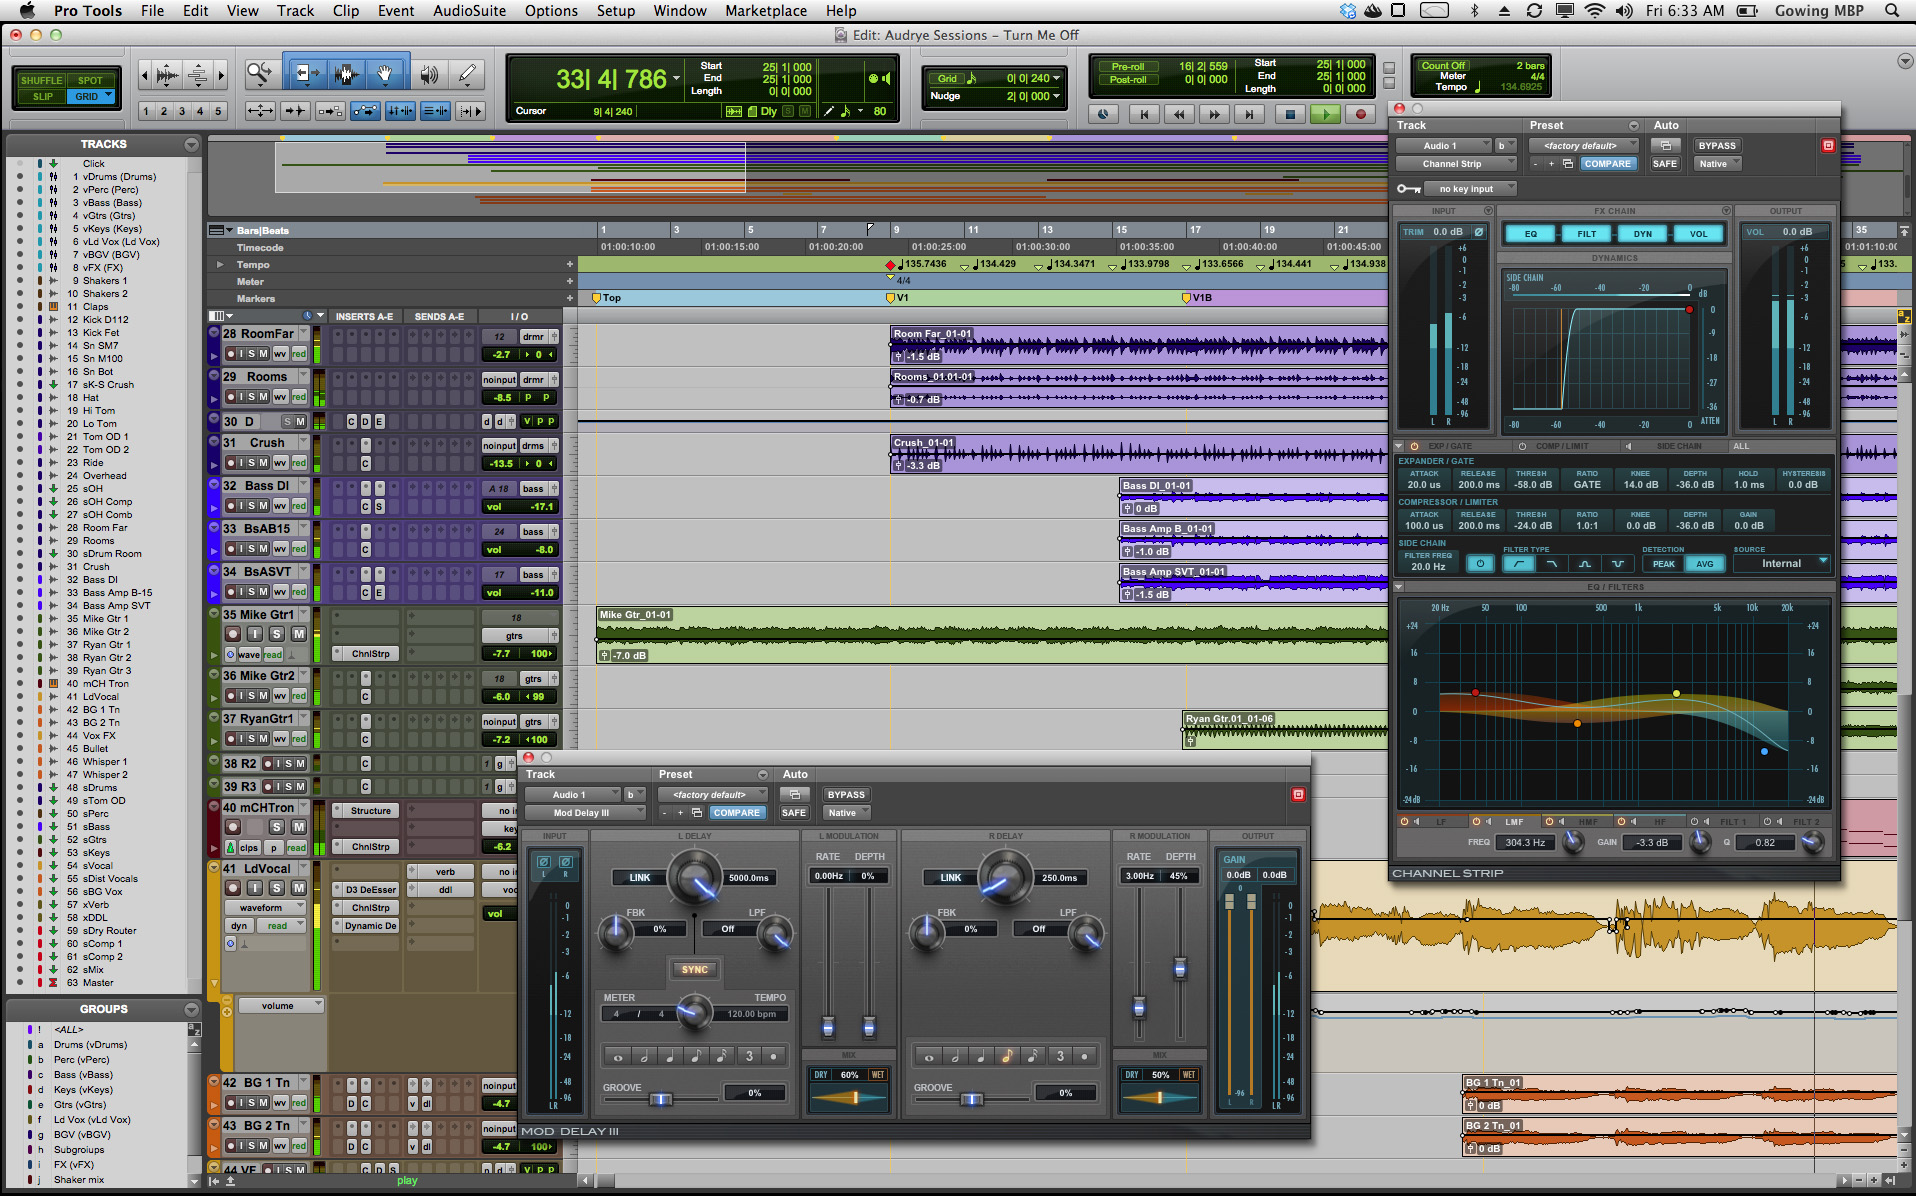 ... Software,Tools And Keygen's: Free Download AVS-Video-Editor 6.1 And